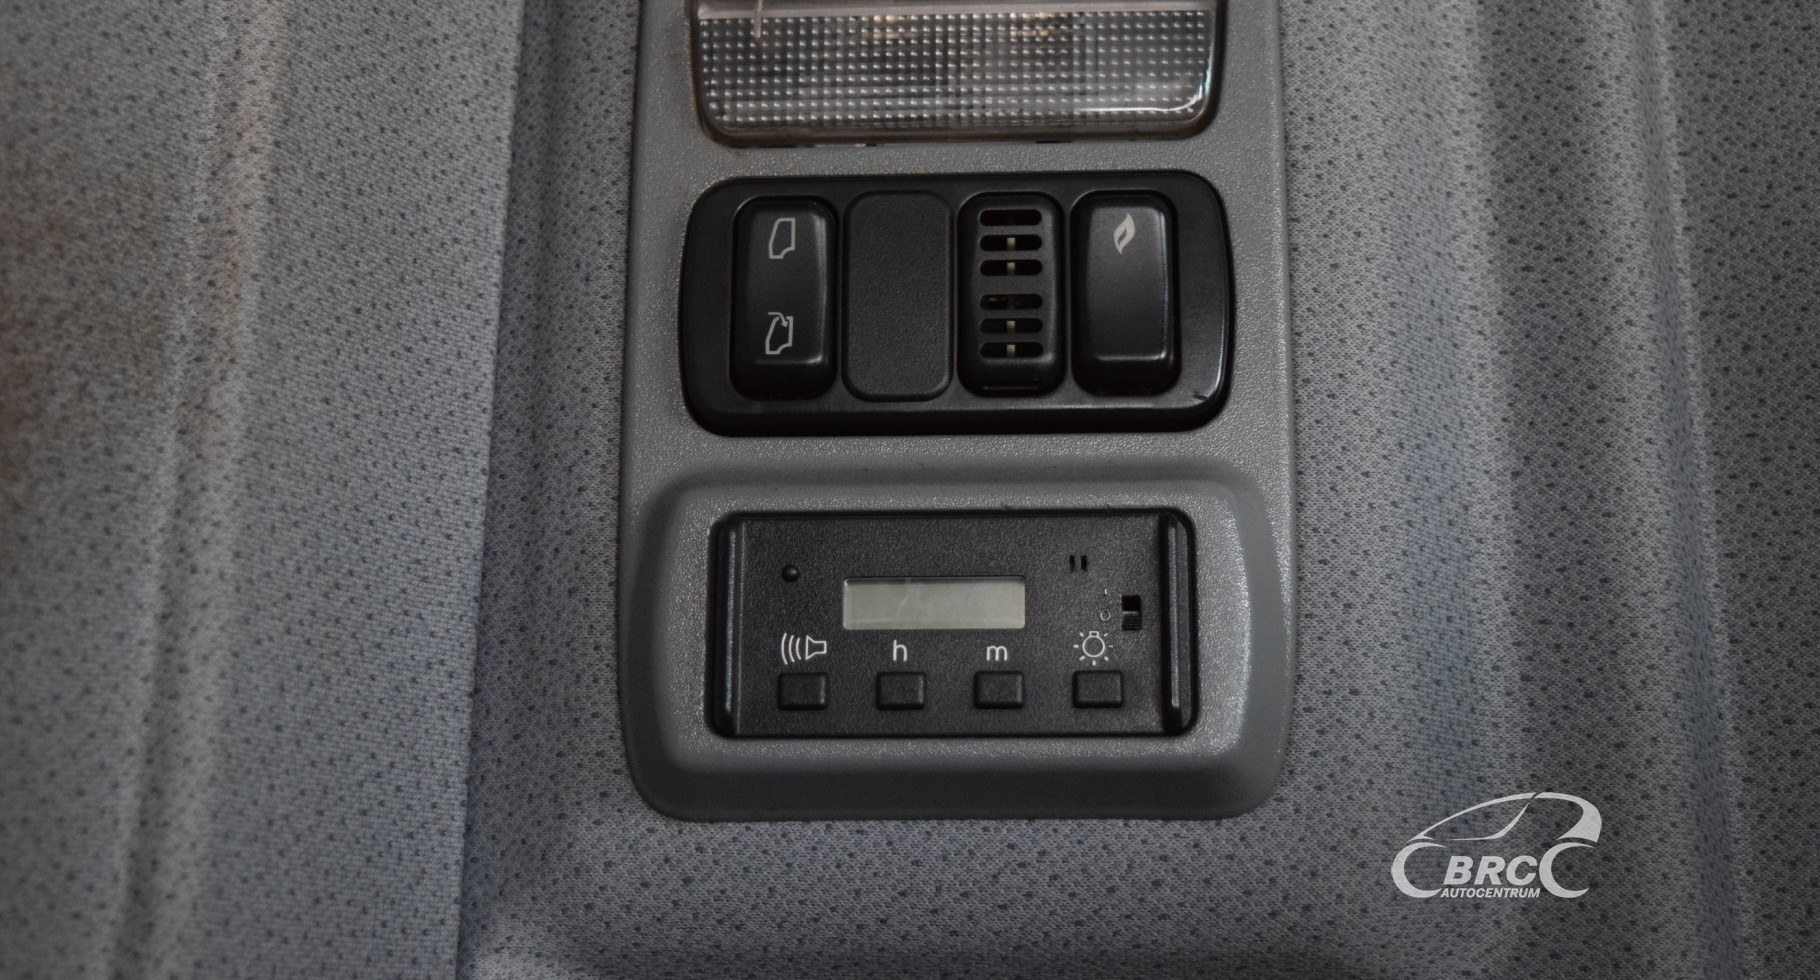 Toyota Sienna 2010-2018 Owners Manual: Playing an audio CD andMP3WMAAAC discs